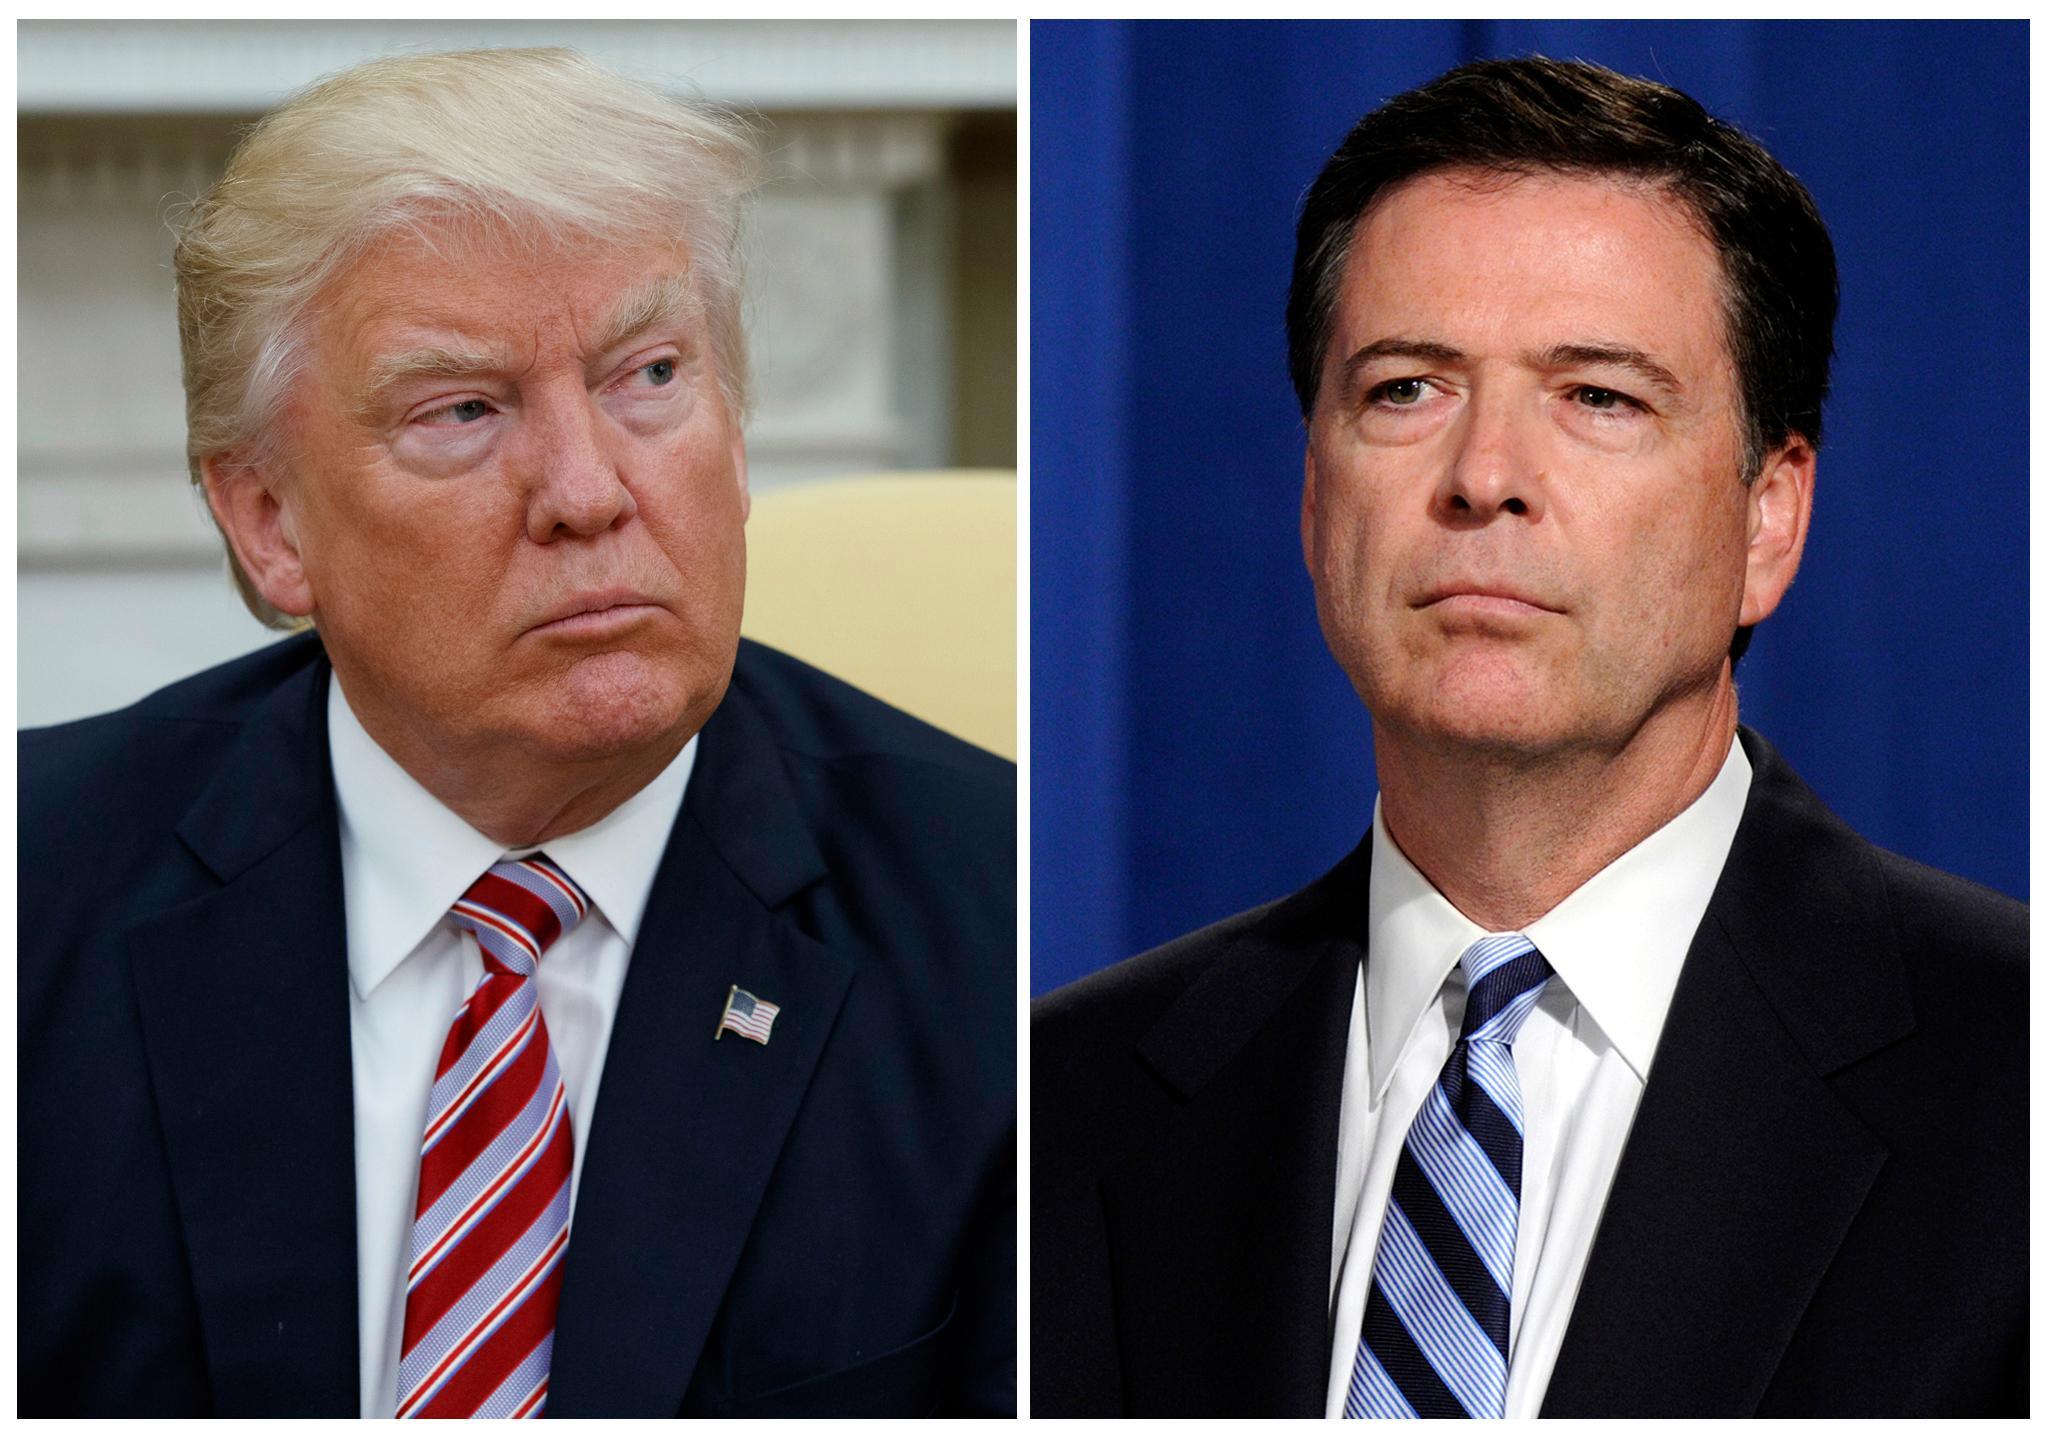 In this combination photo, President Donald Trump, left, appears in the Oval Office of the White House in Washington on May 10, 2017, and FBI Director James Comey appears at a news conference in Washington on June 30, 2014.{ } (AP Photo/Evan Vucci, left, and Susan Walsh, File)